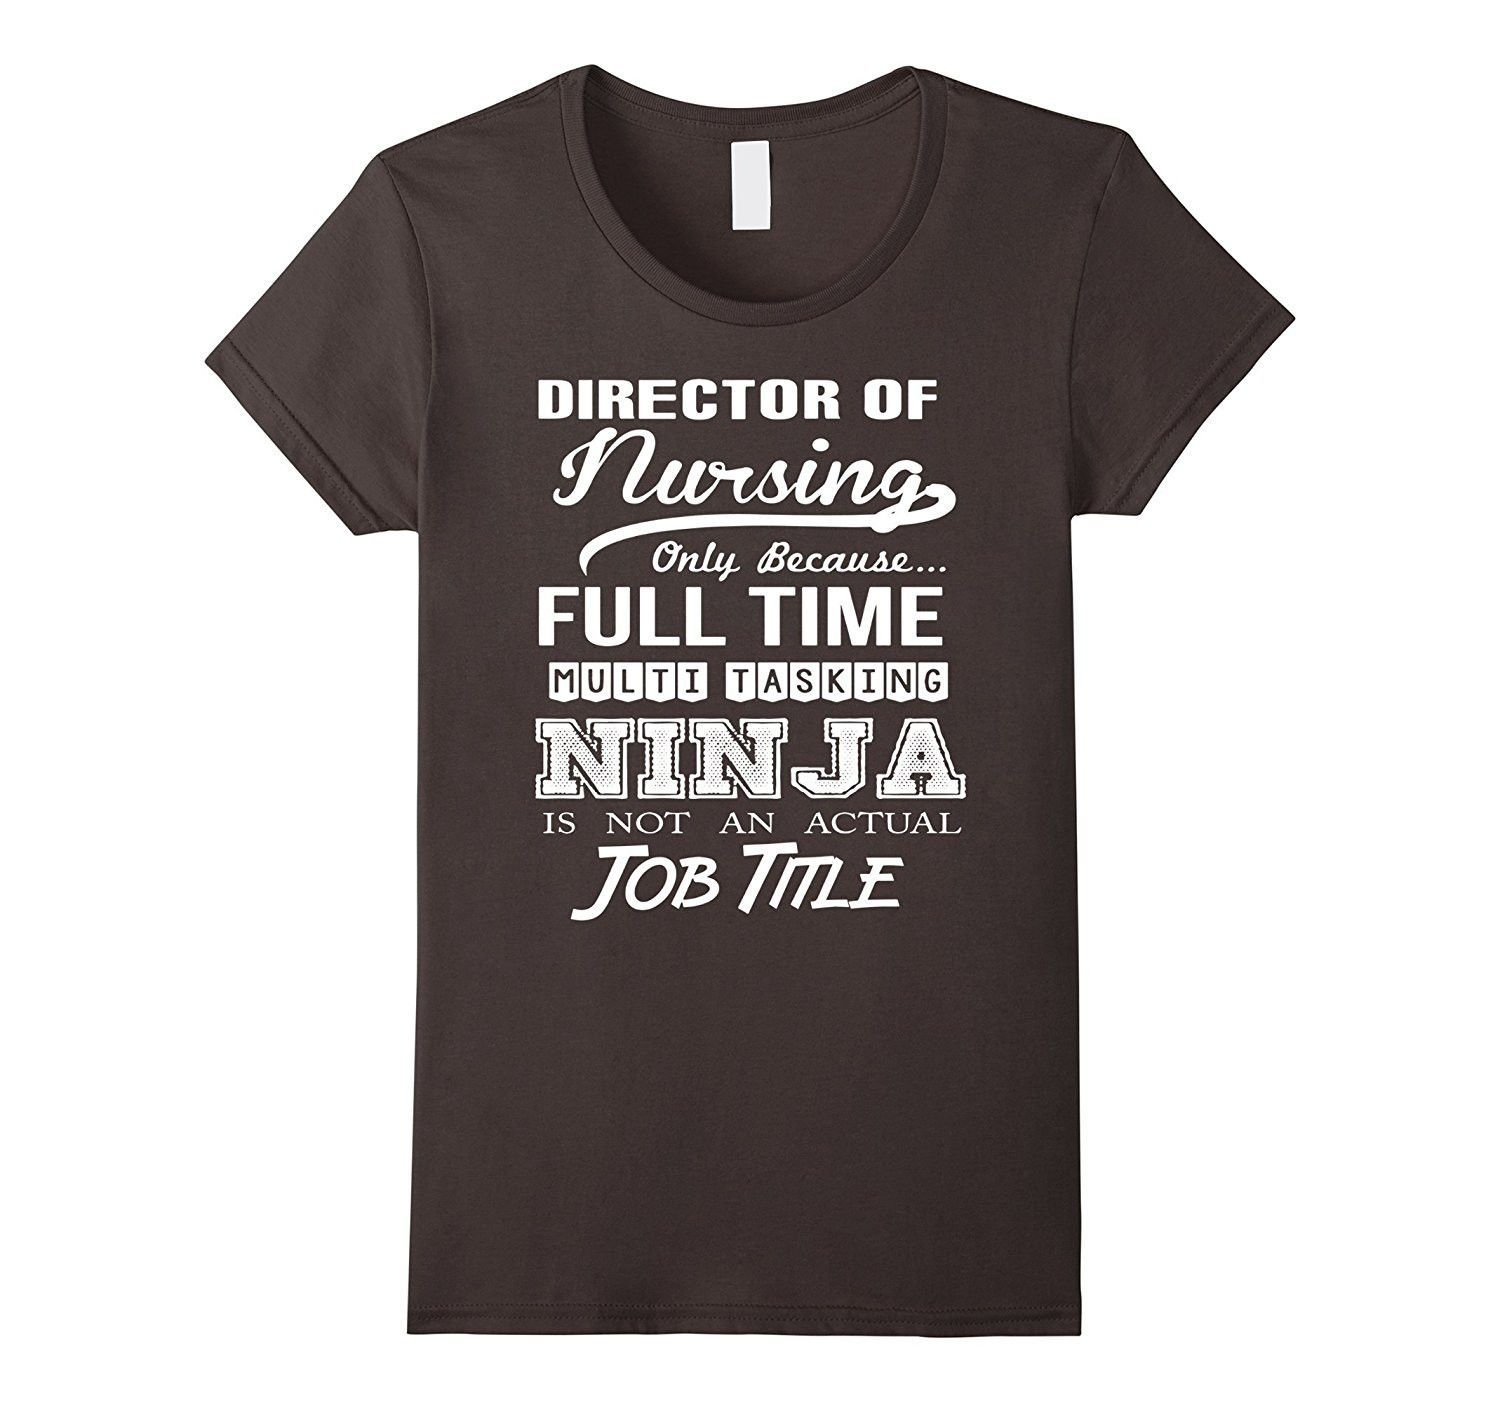 Director Of Nursing Job Title Shirt  Products    Job